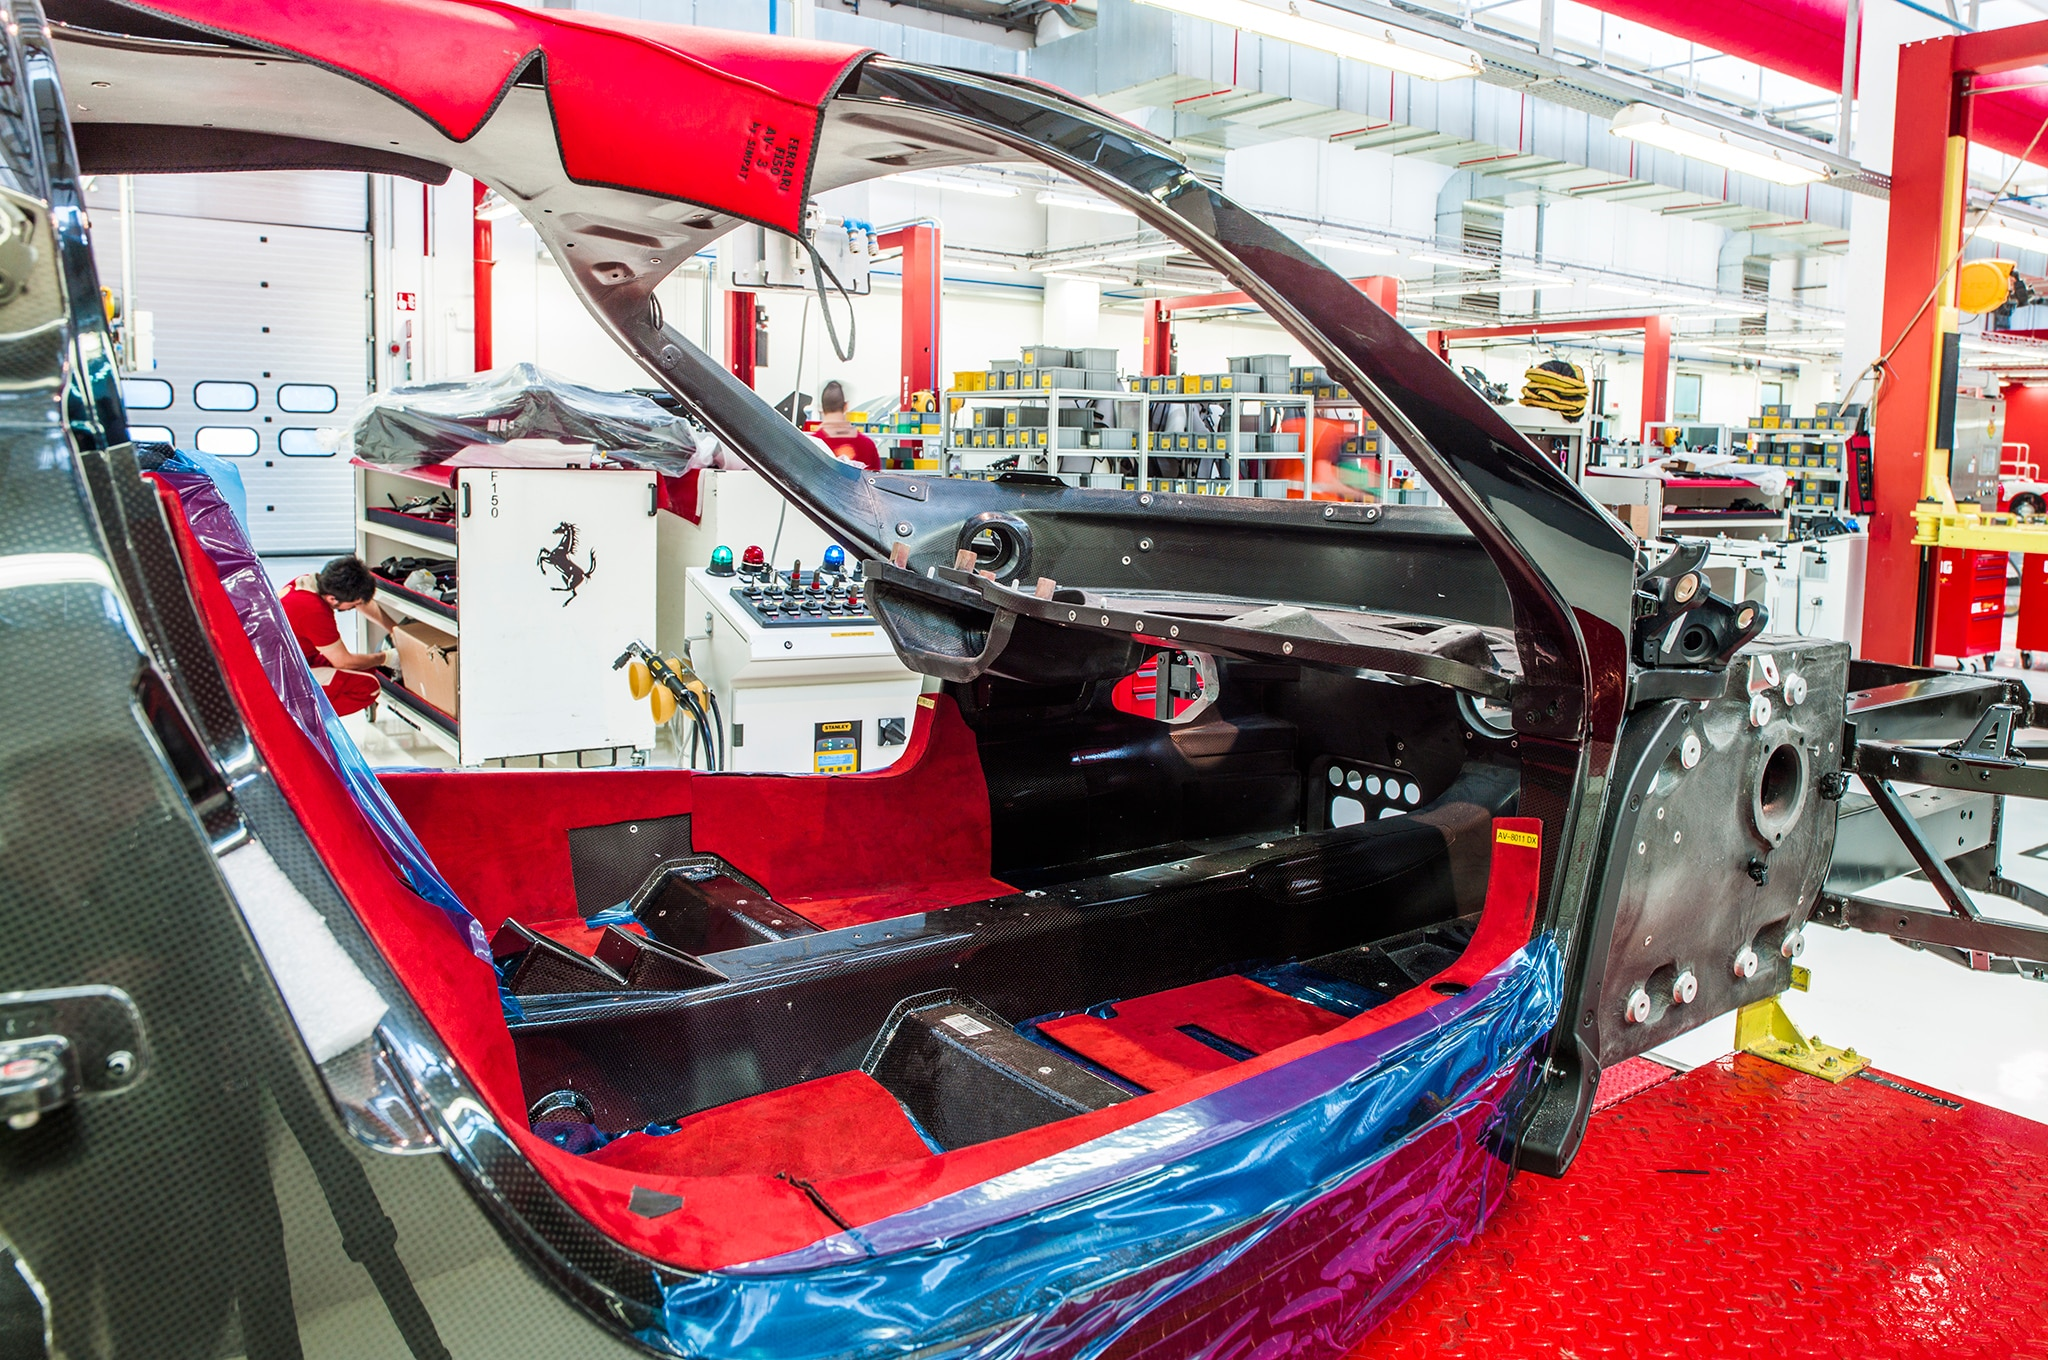 Red padding and blue plastic protect that chassis from nicks and dings through the production process.